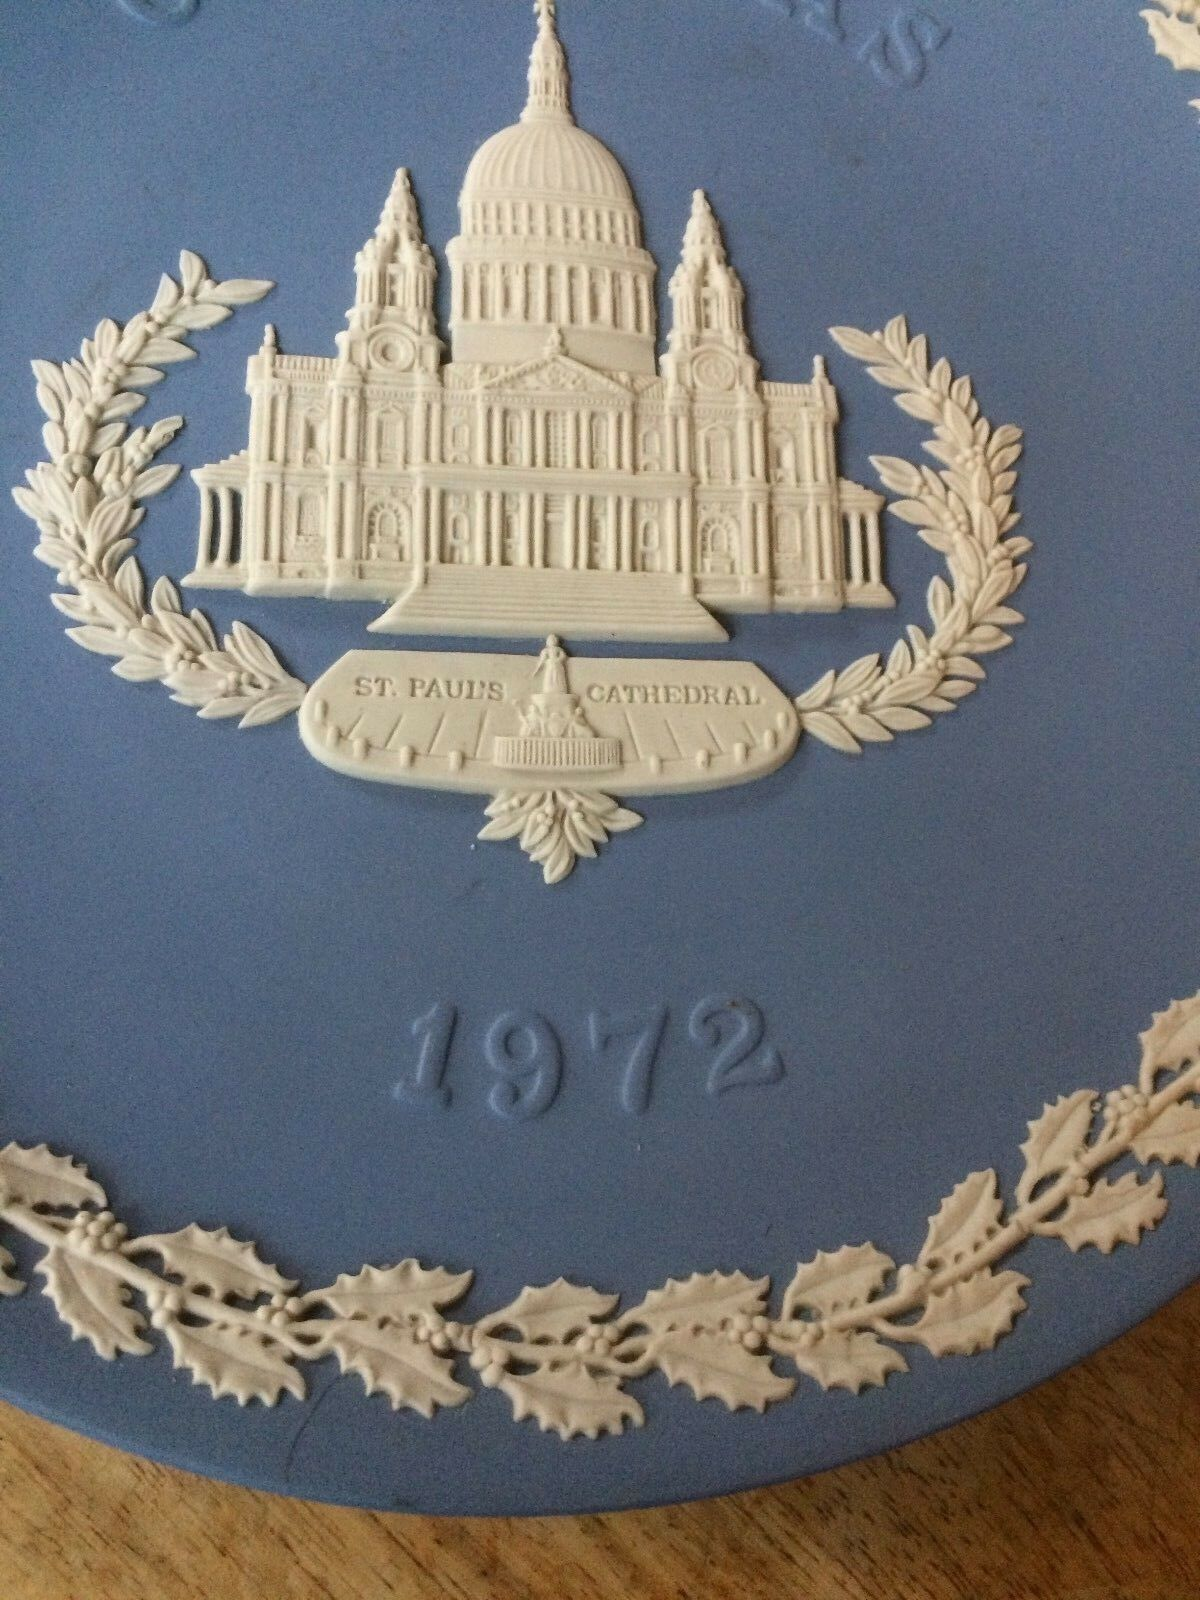 Image 5 - Wedgwood Jasper Ware Blue plate Christmas 1972 - St Paul's Cathedral